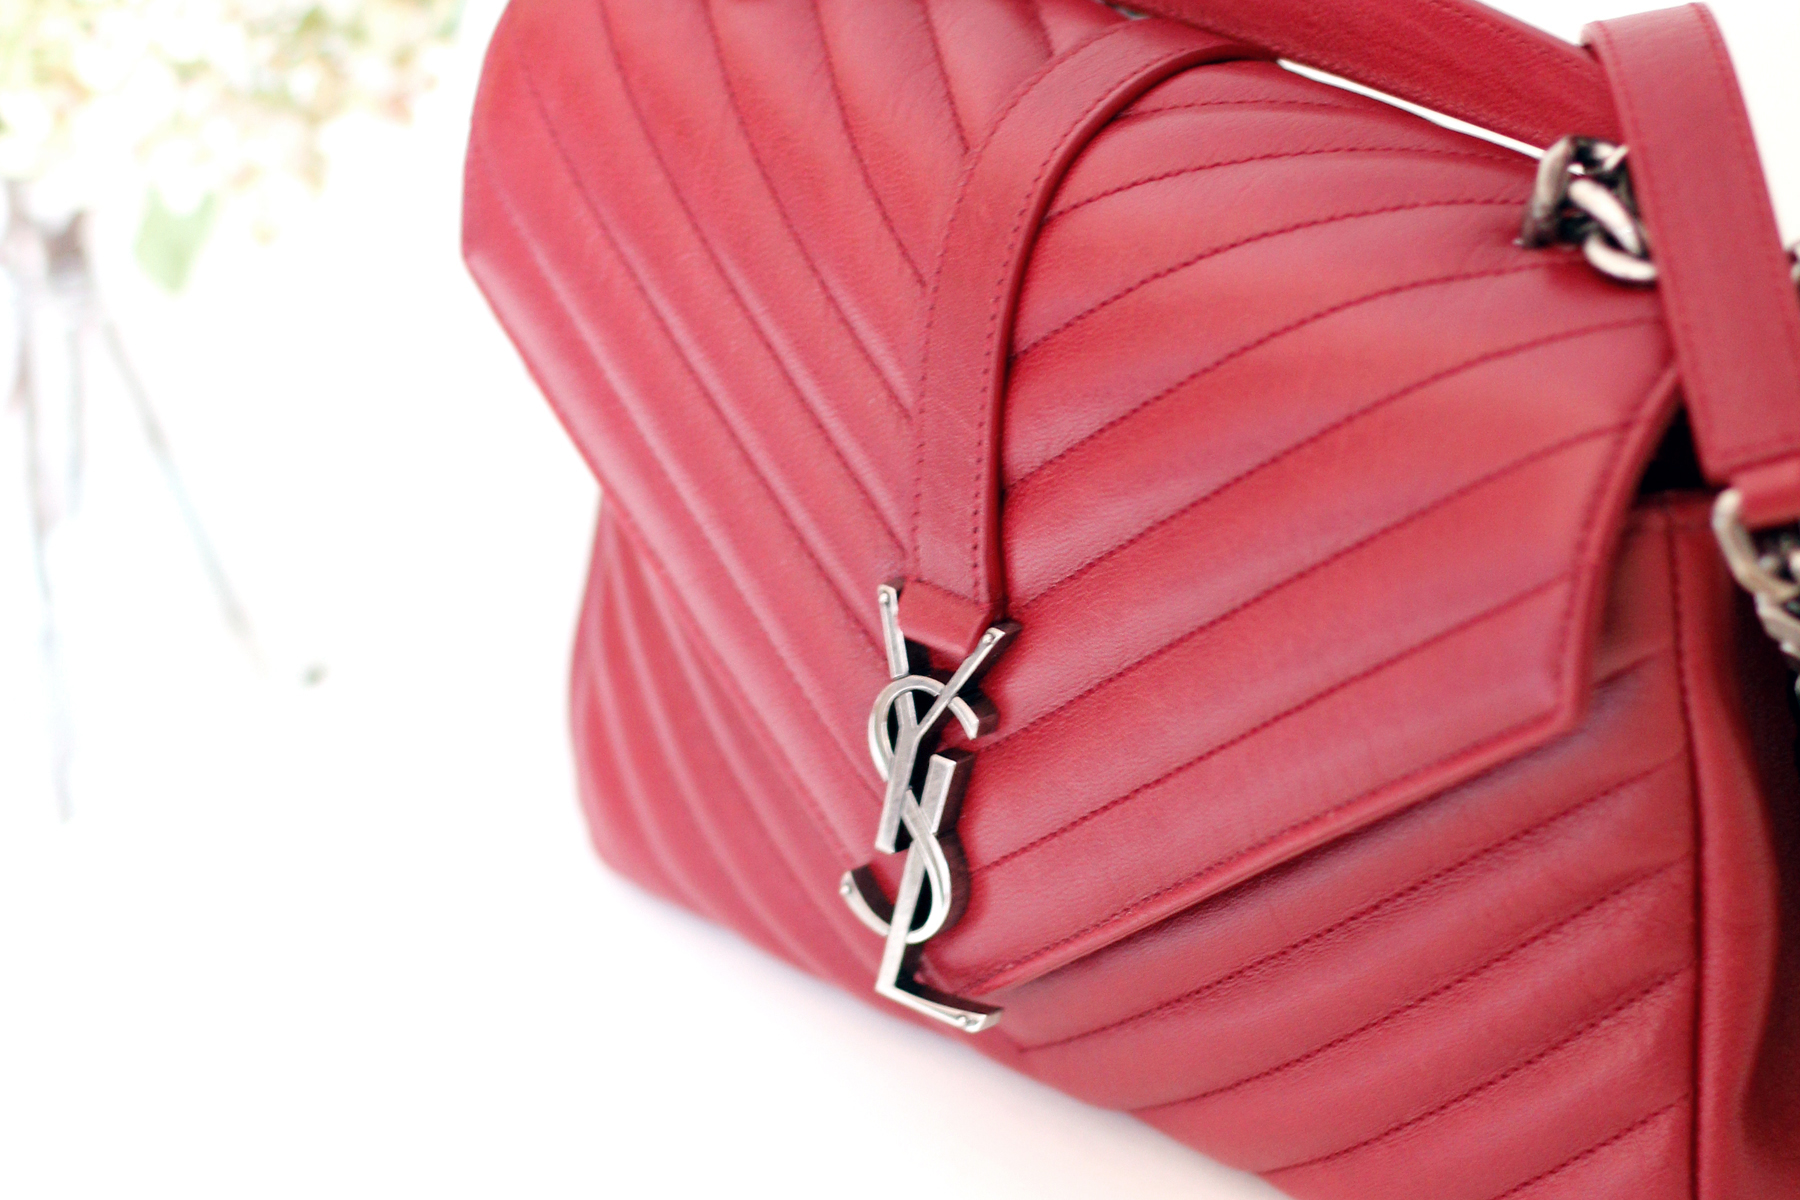 YSL Saint Laurent Paris Classic Monogramme Flap Bag Red Toss Or Take fashionblogger germanblogger cats & dogs ricarda schernus styleblogger accessoires düsseldorf berlin 2